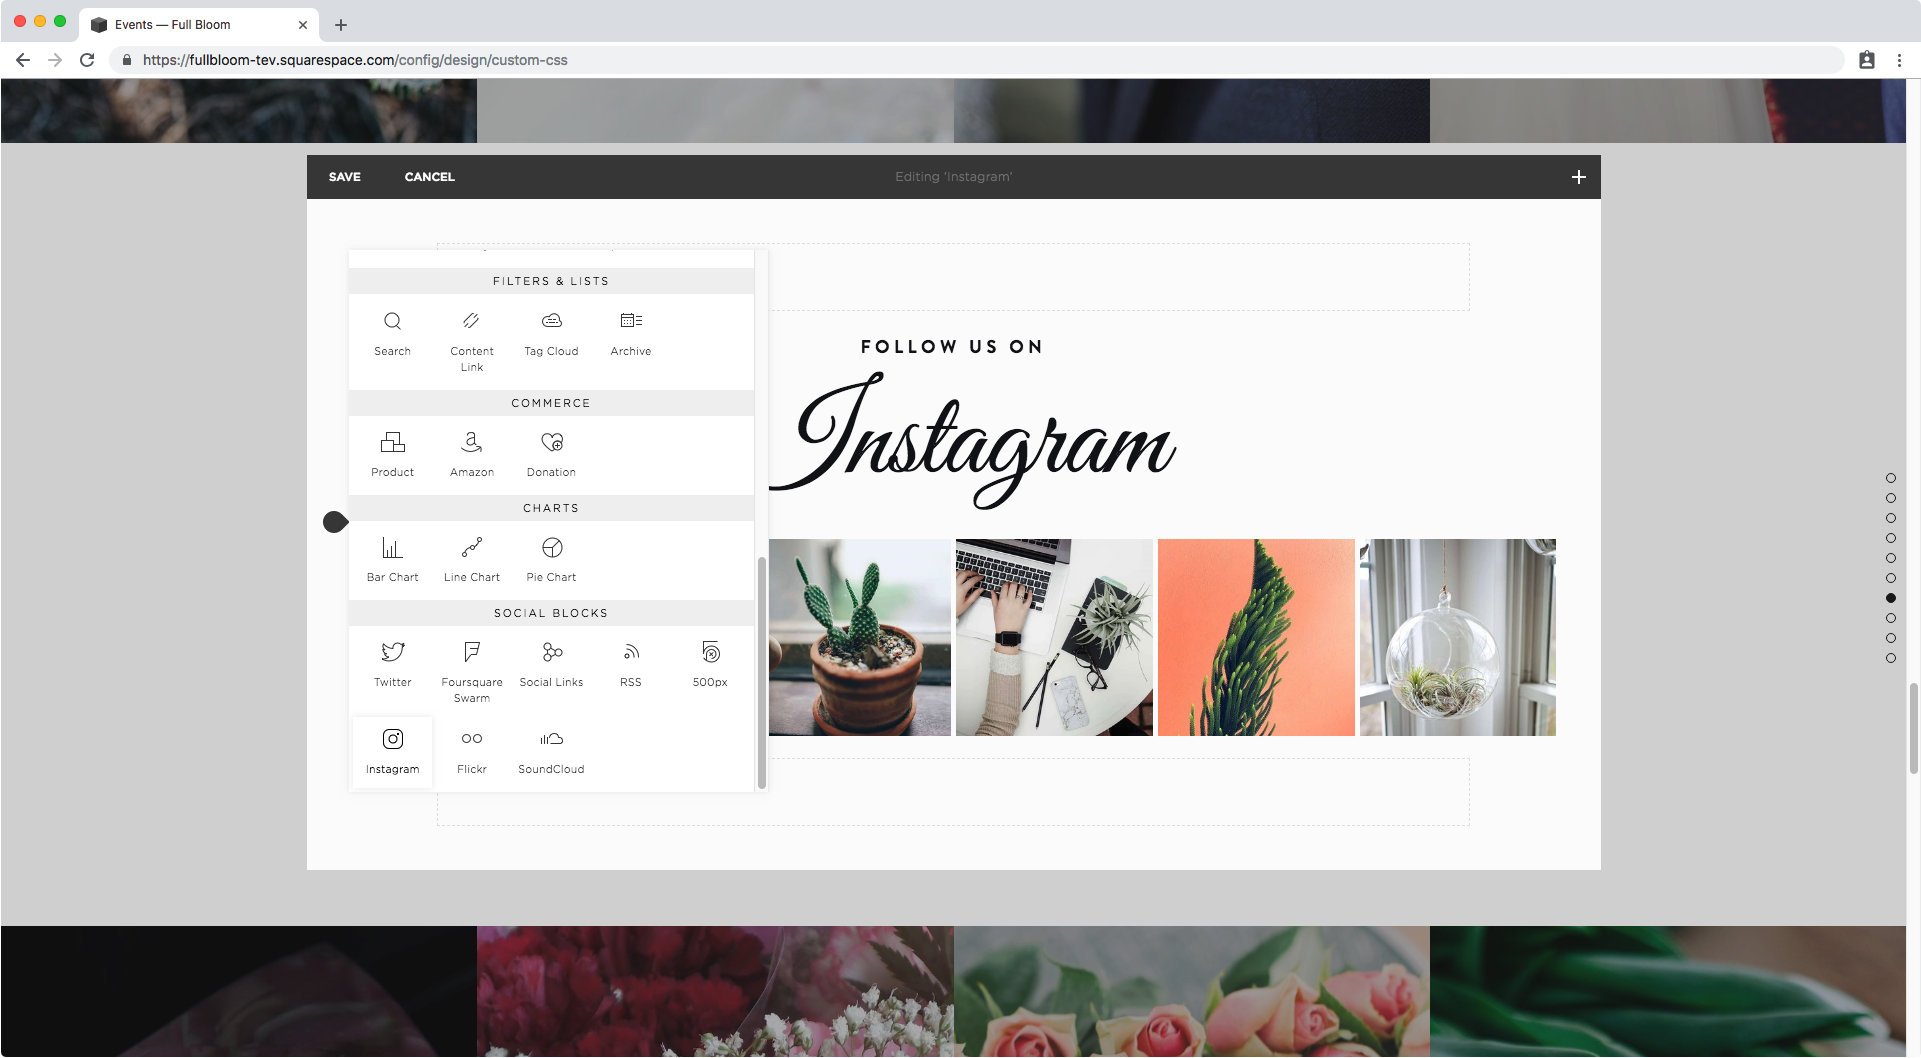 Adding an instagram block in Squarespace